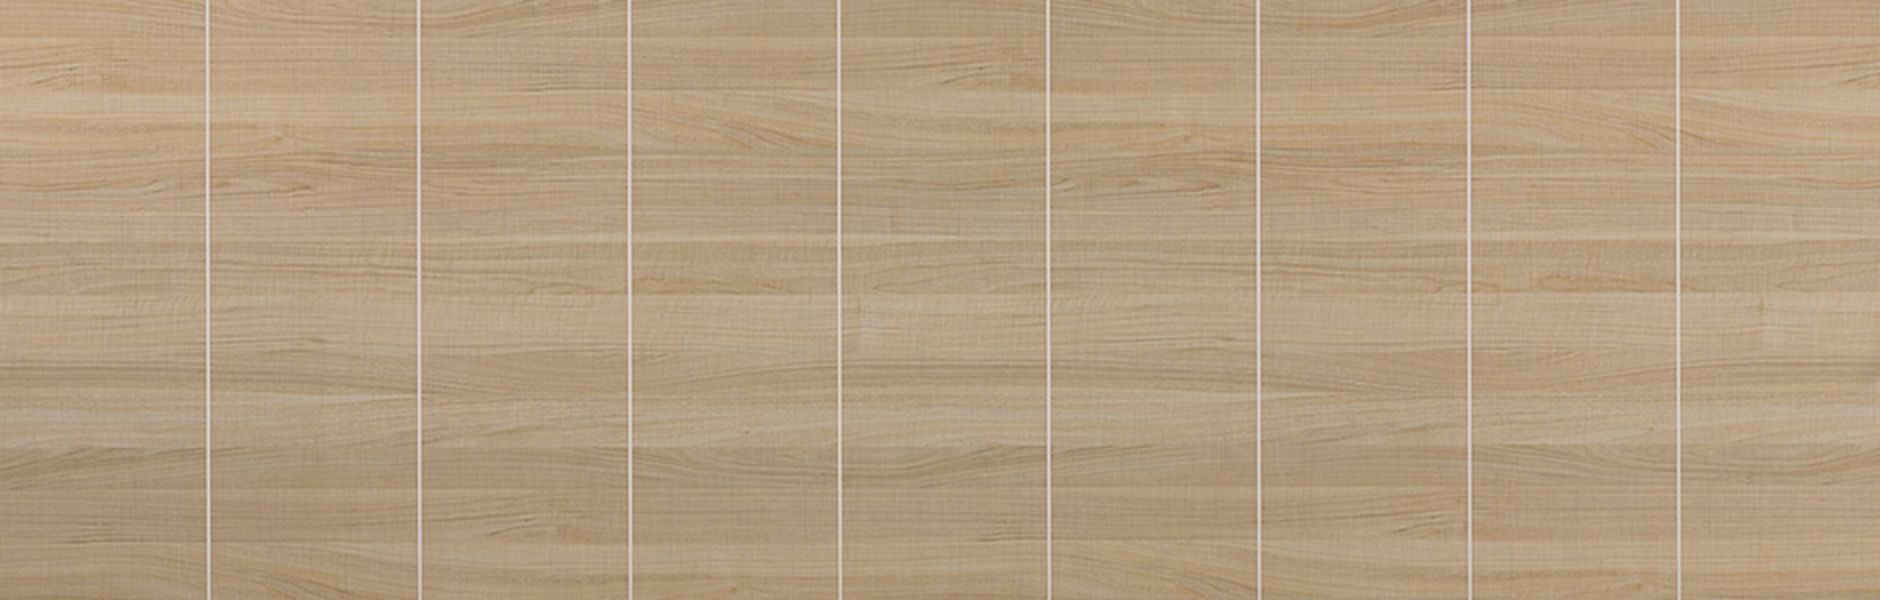 Фото 3 - Декоративные панели Sibu WoodLine maple